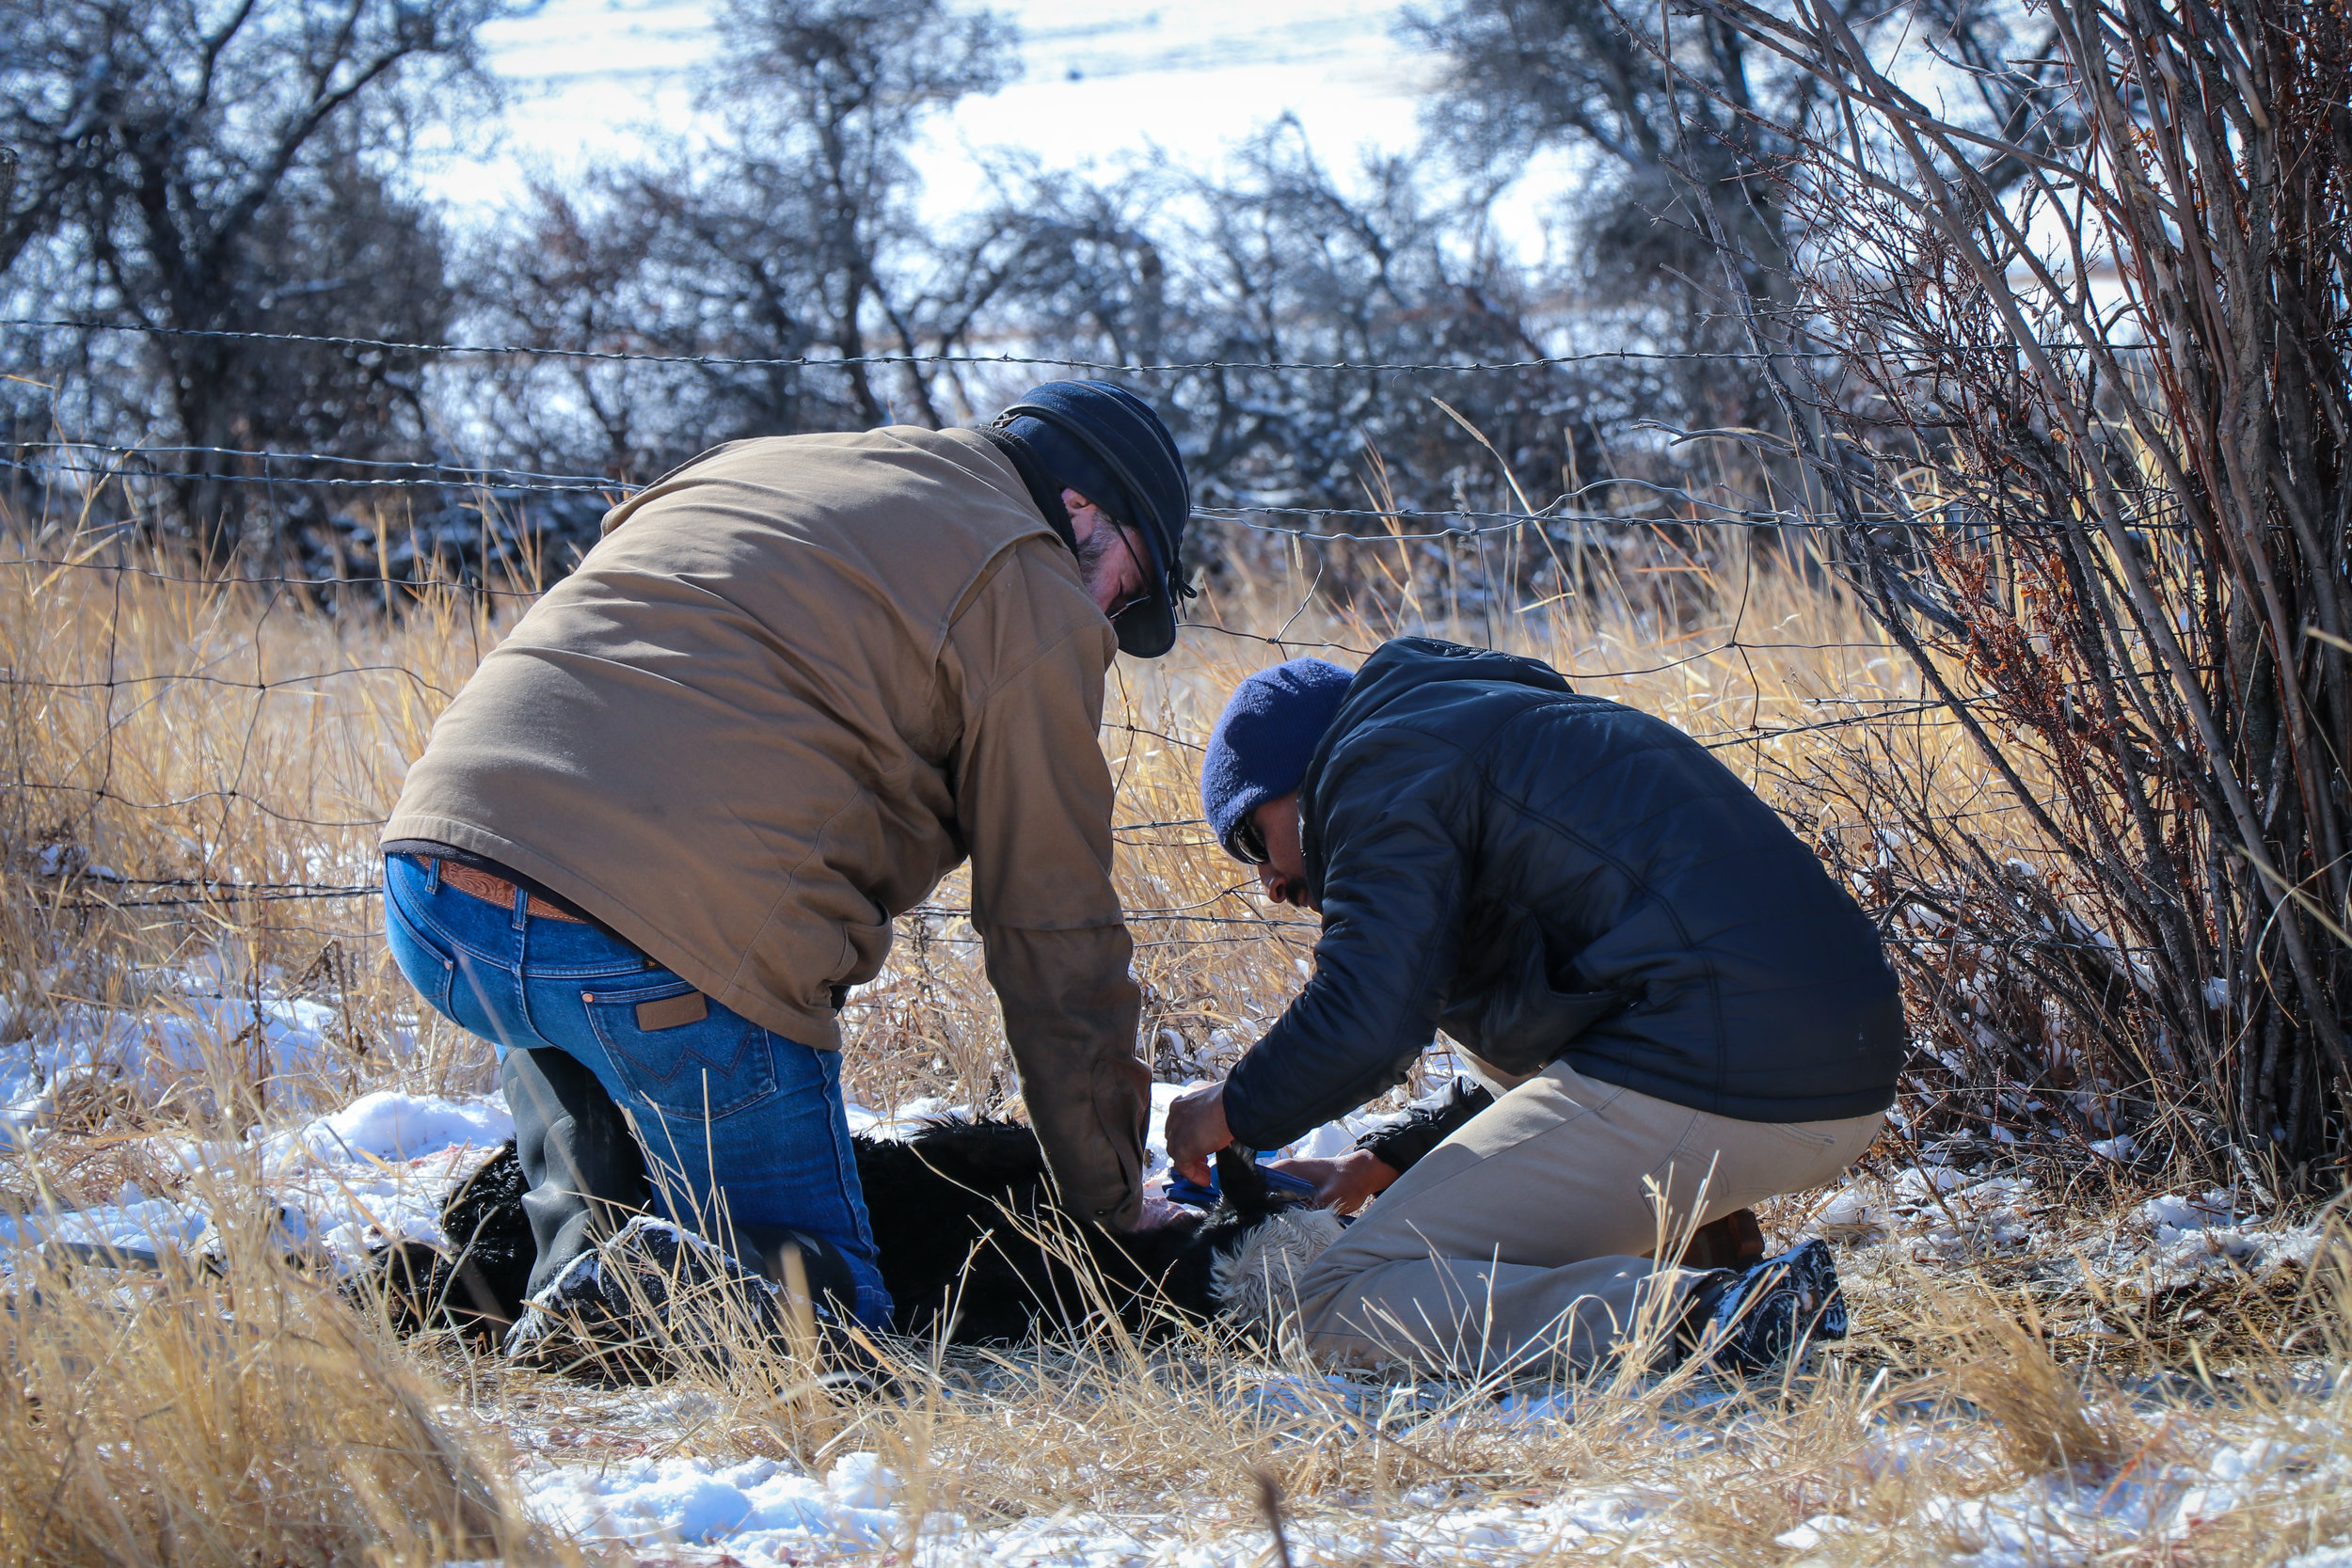 GYC's Director of Conservation Siva Sundaresan (right), tags one of rancher Neil Barnosky's newborn calves. The tags identify which calf belongs to which cow.  (Photo GYC/Emmy Reed.)